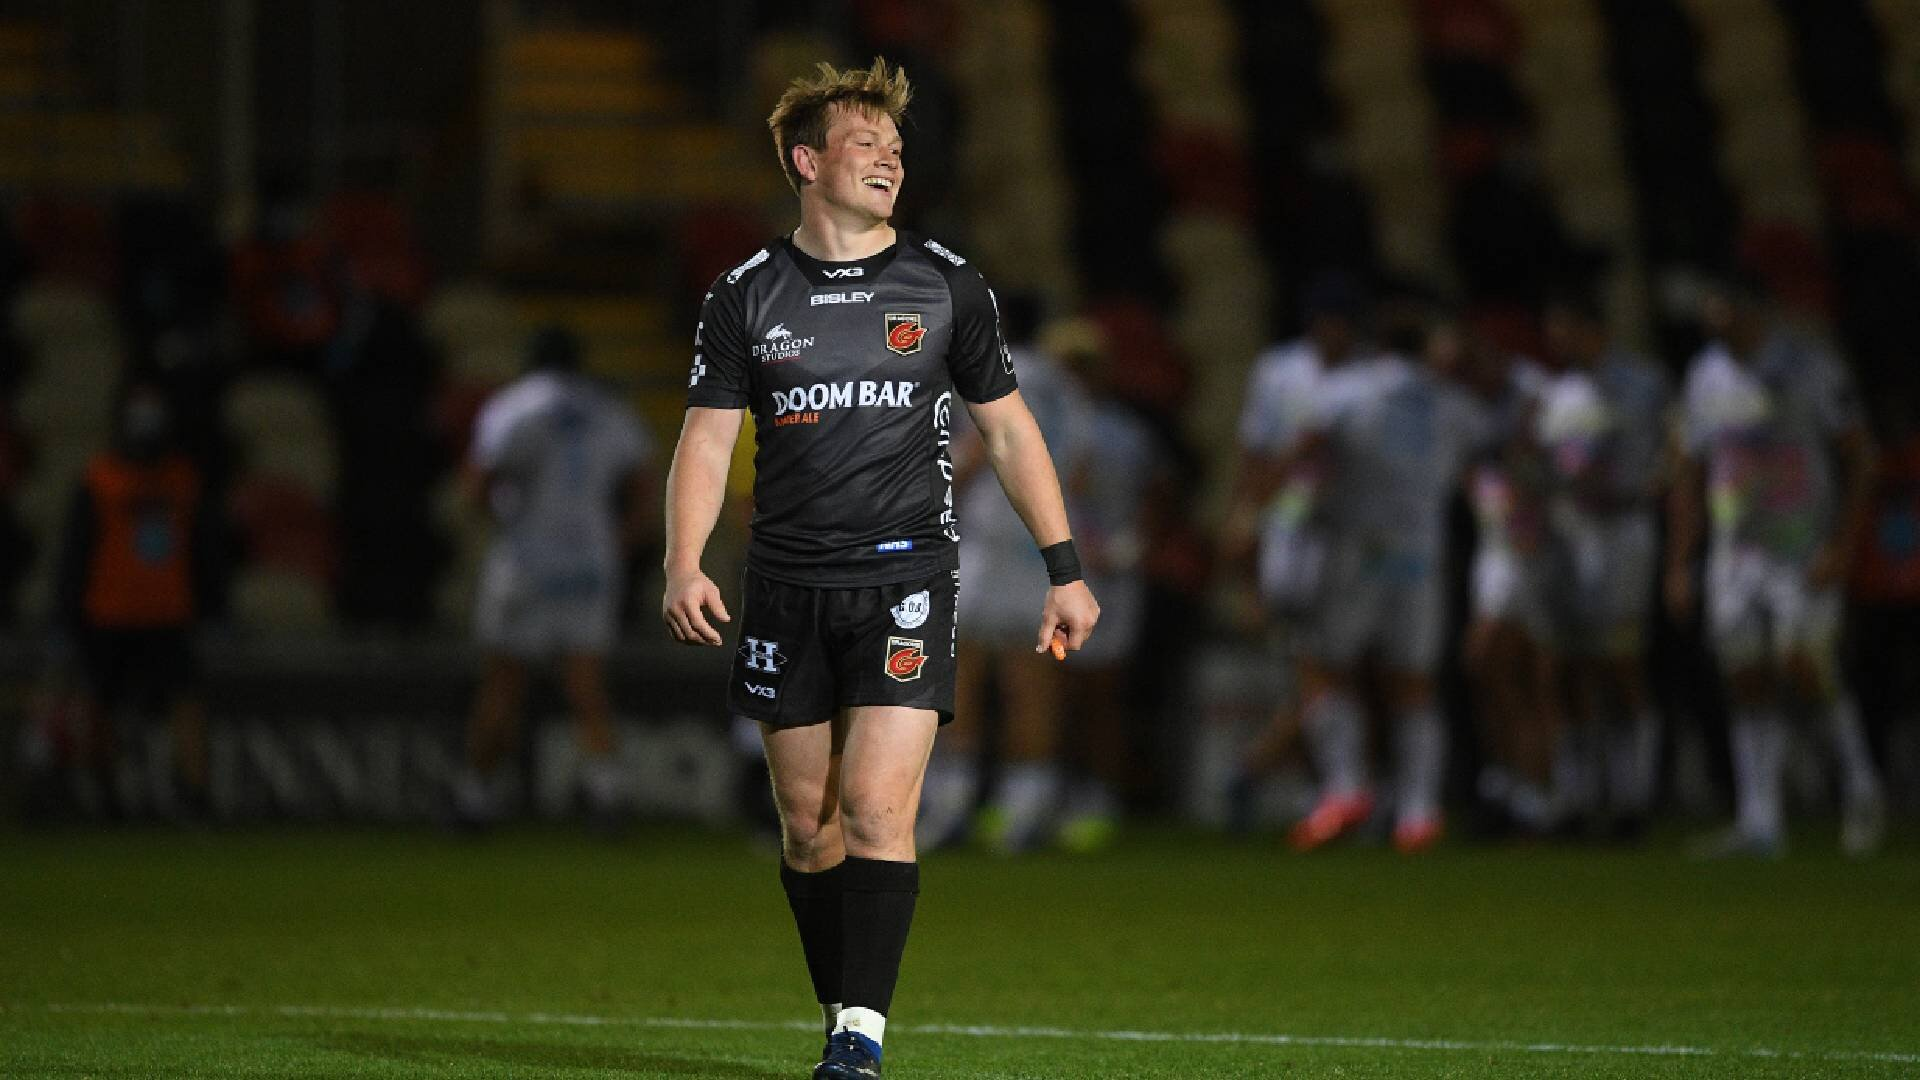 Dragons up and running in PRO14 with home win against Zebre